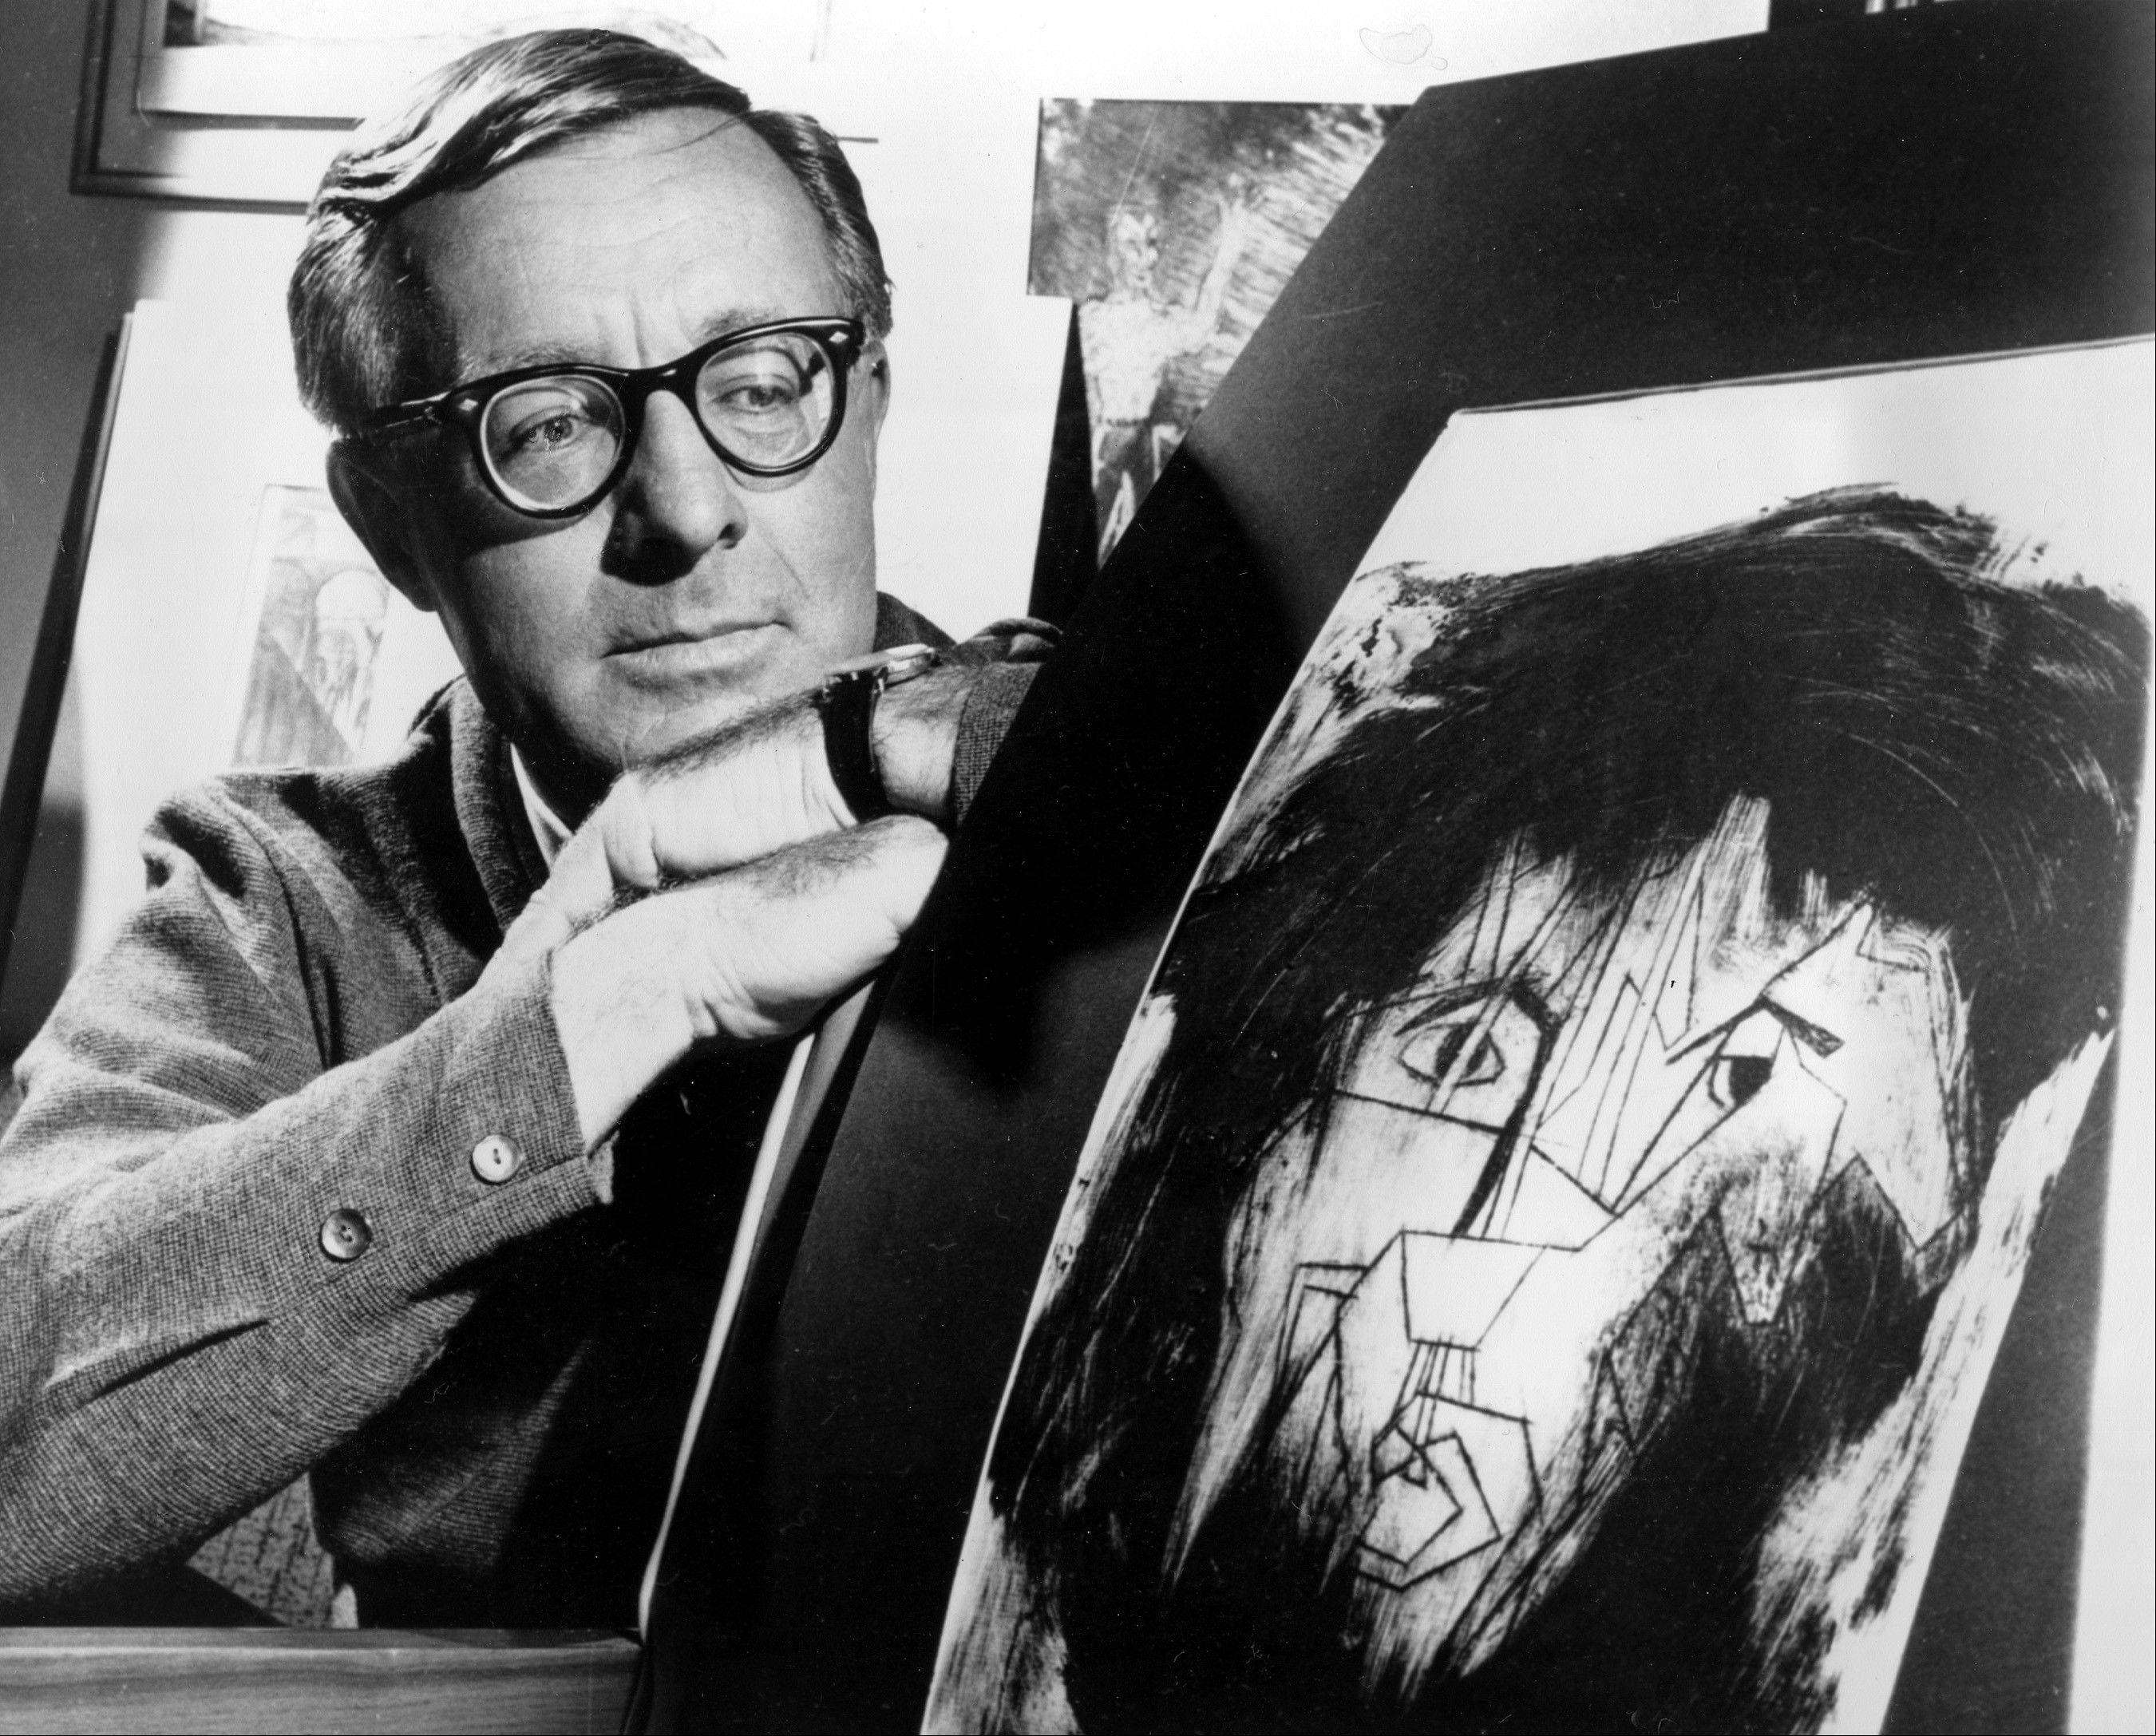 This Dec. 8, 1966 file photo shows science fiction writer Ray Bradbury looks at a picture that was part of a school project to illustrate characters in one of his dramas in Los Angeles. Bradbury, who wrote everything from science-fiction and mystery to humor, died Tuesday, June 5, 2012 in Southern California. He was 91.